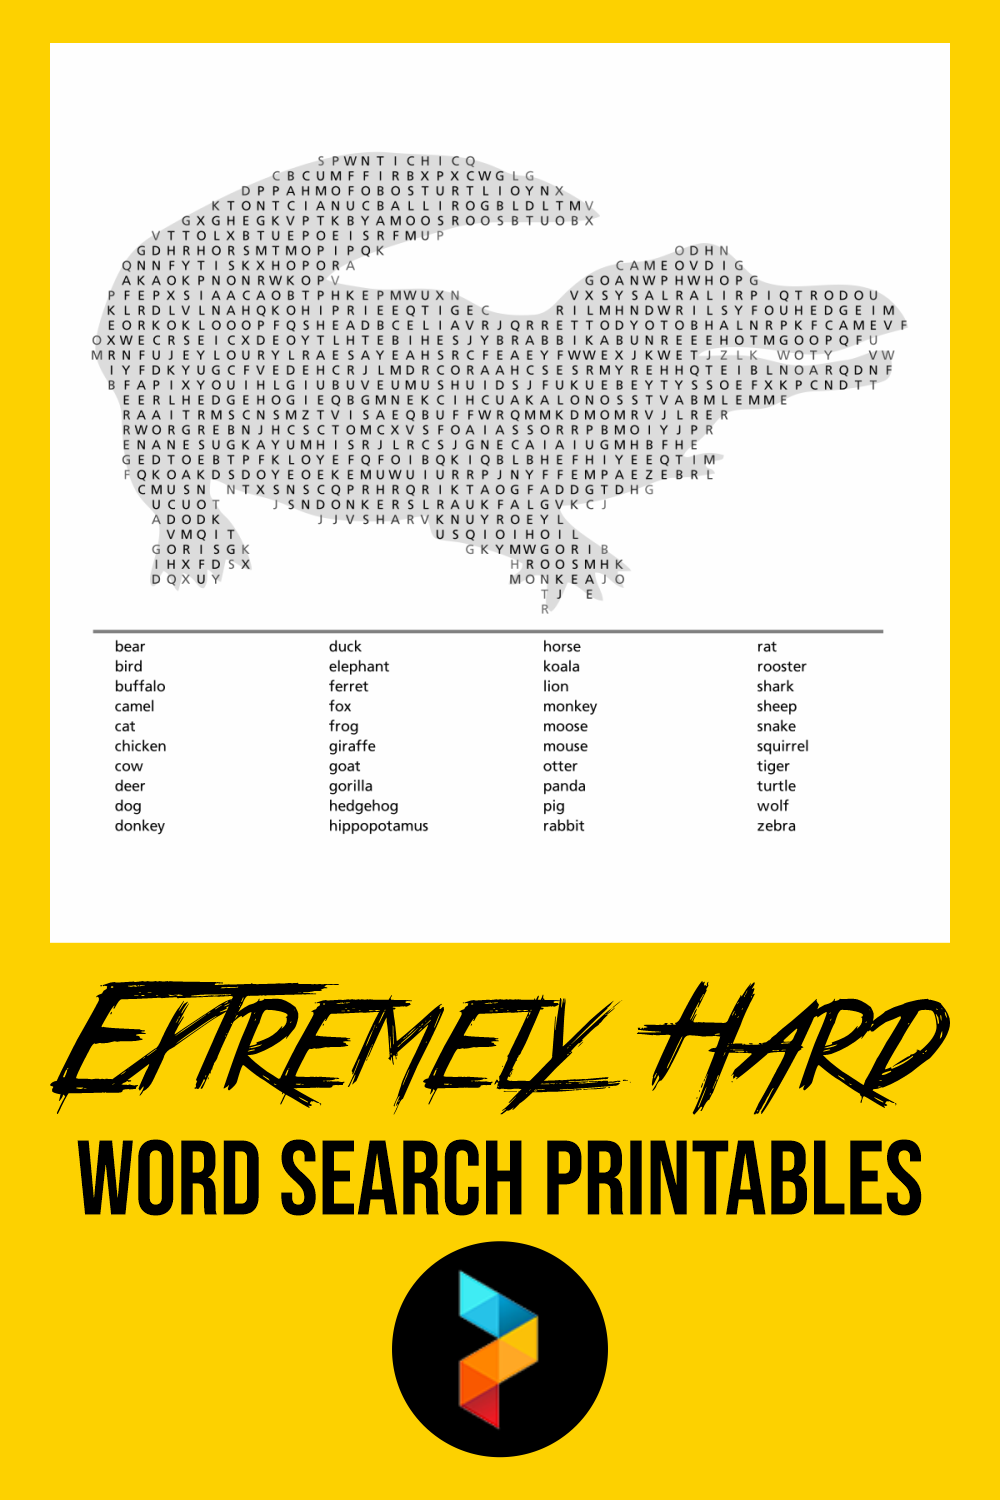 Extremely Hard Word Search Printables